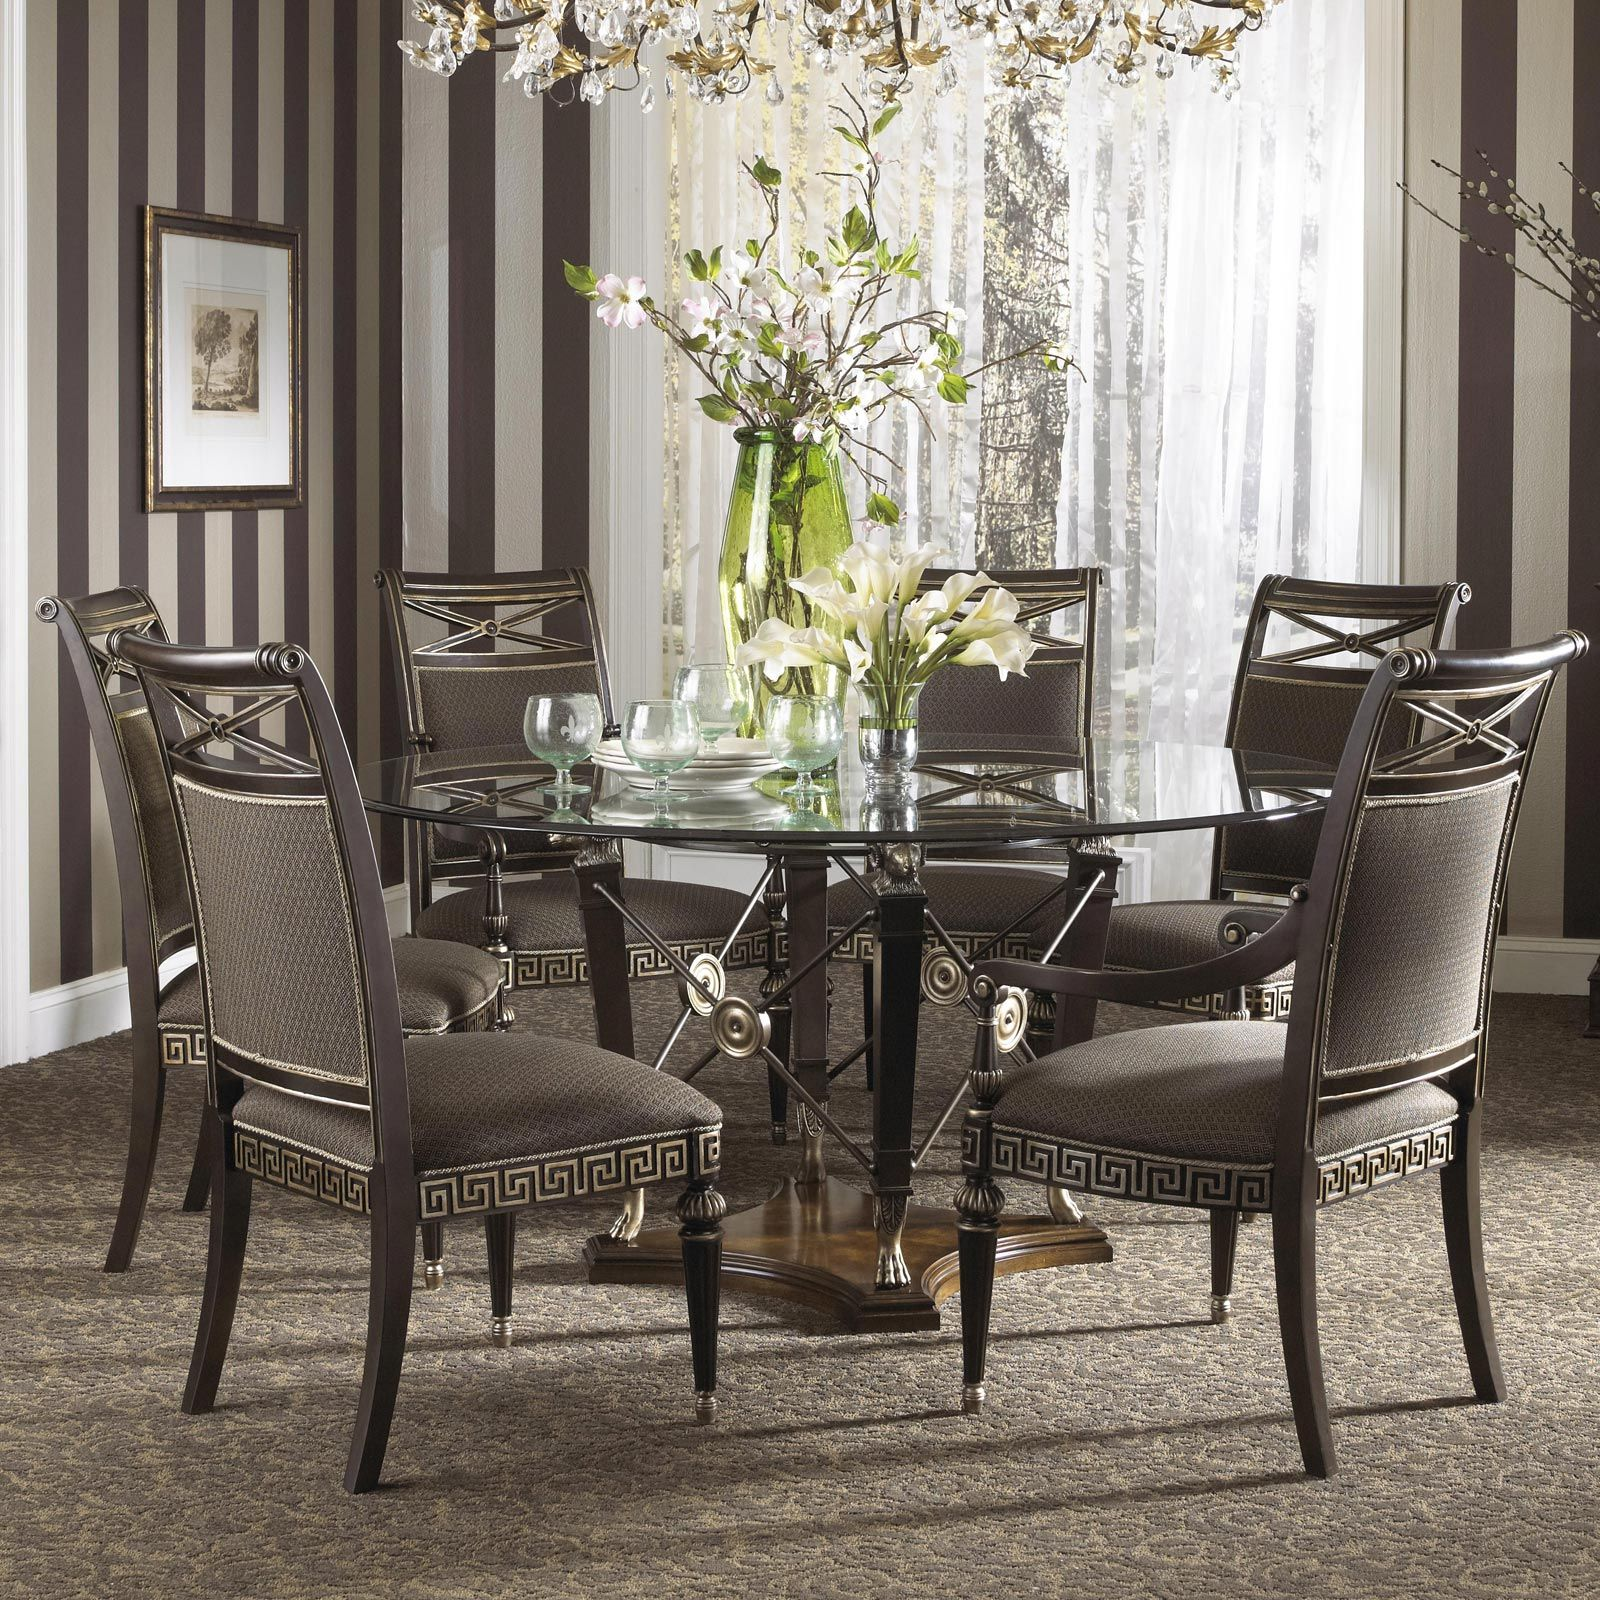 Formal Dining Table: Formal Dining Room Chairs - Dining Room Furniture